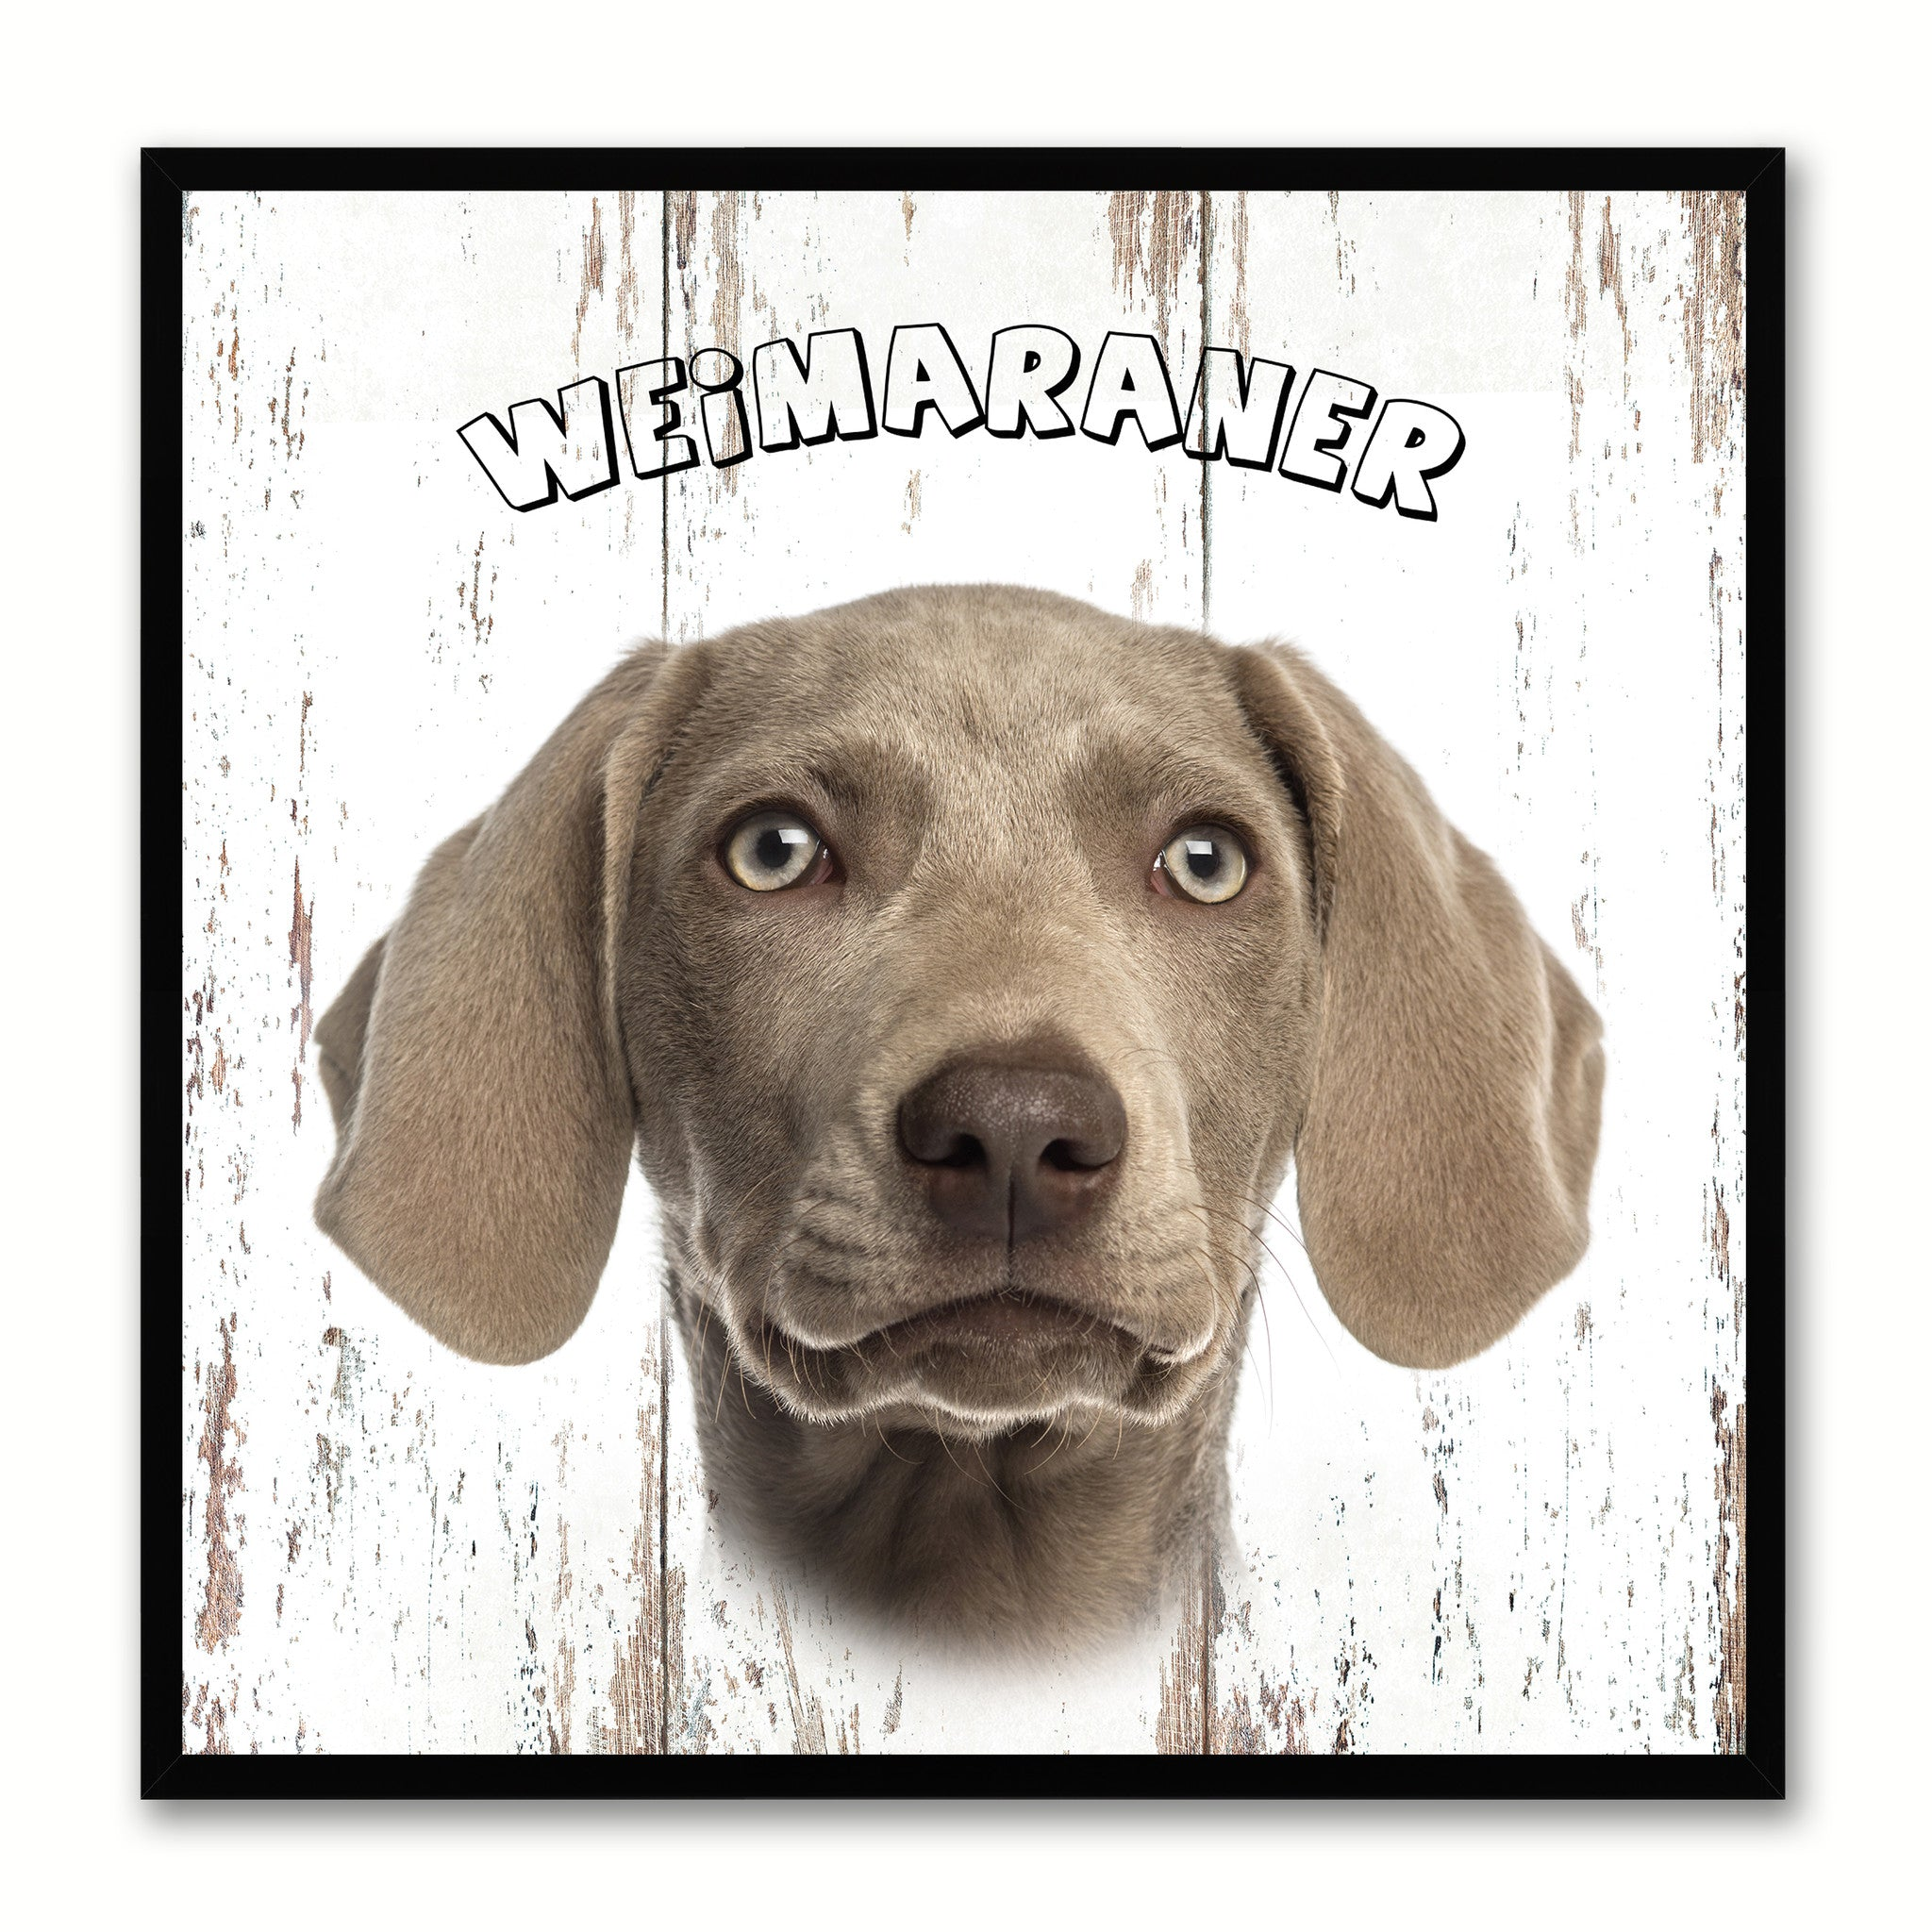 Weimaraner Dog Canvas Print Picture Frame Gift Home Decor Wall Art Decoration